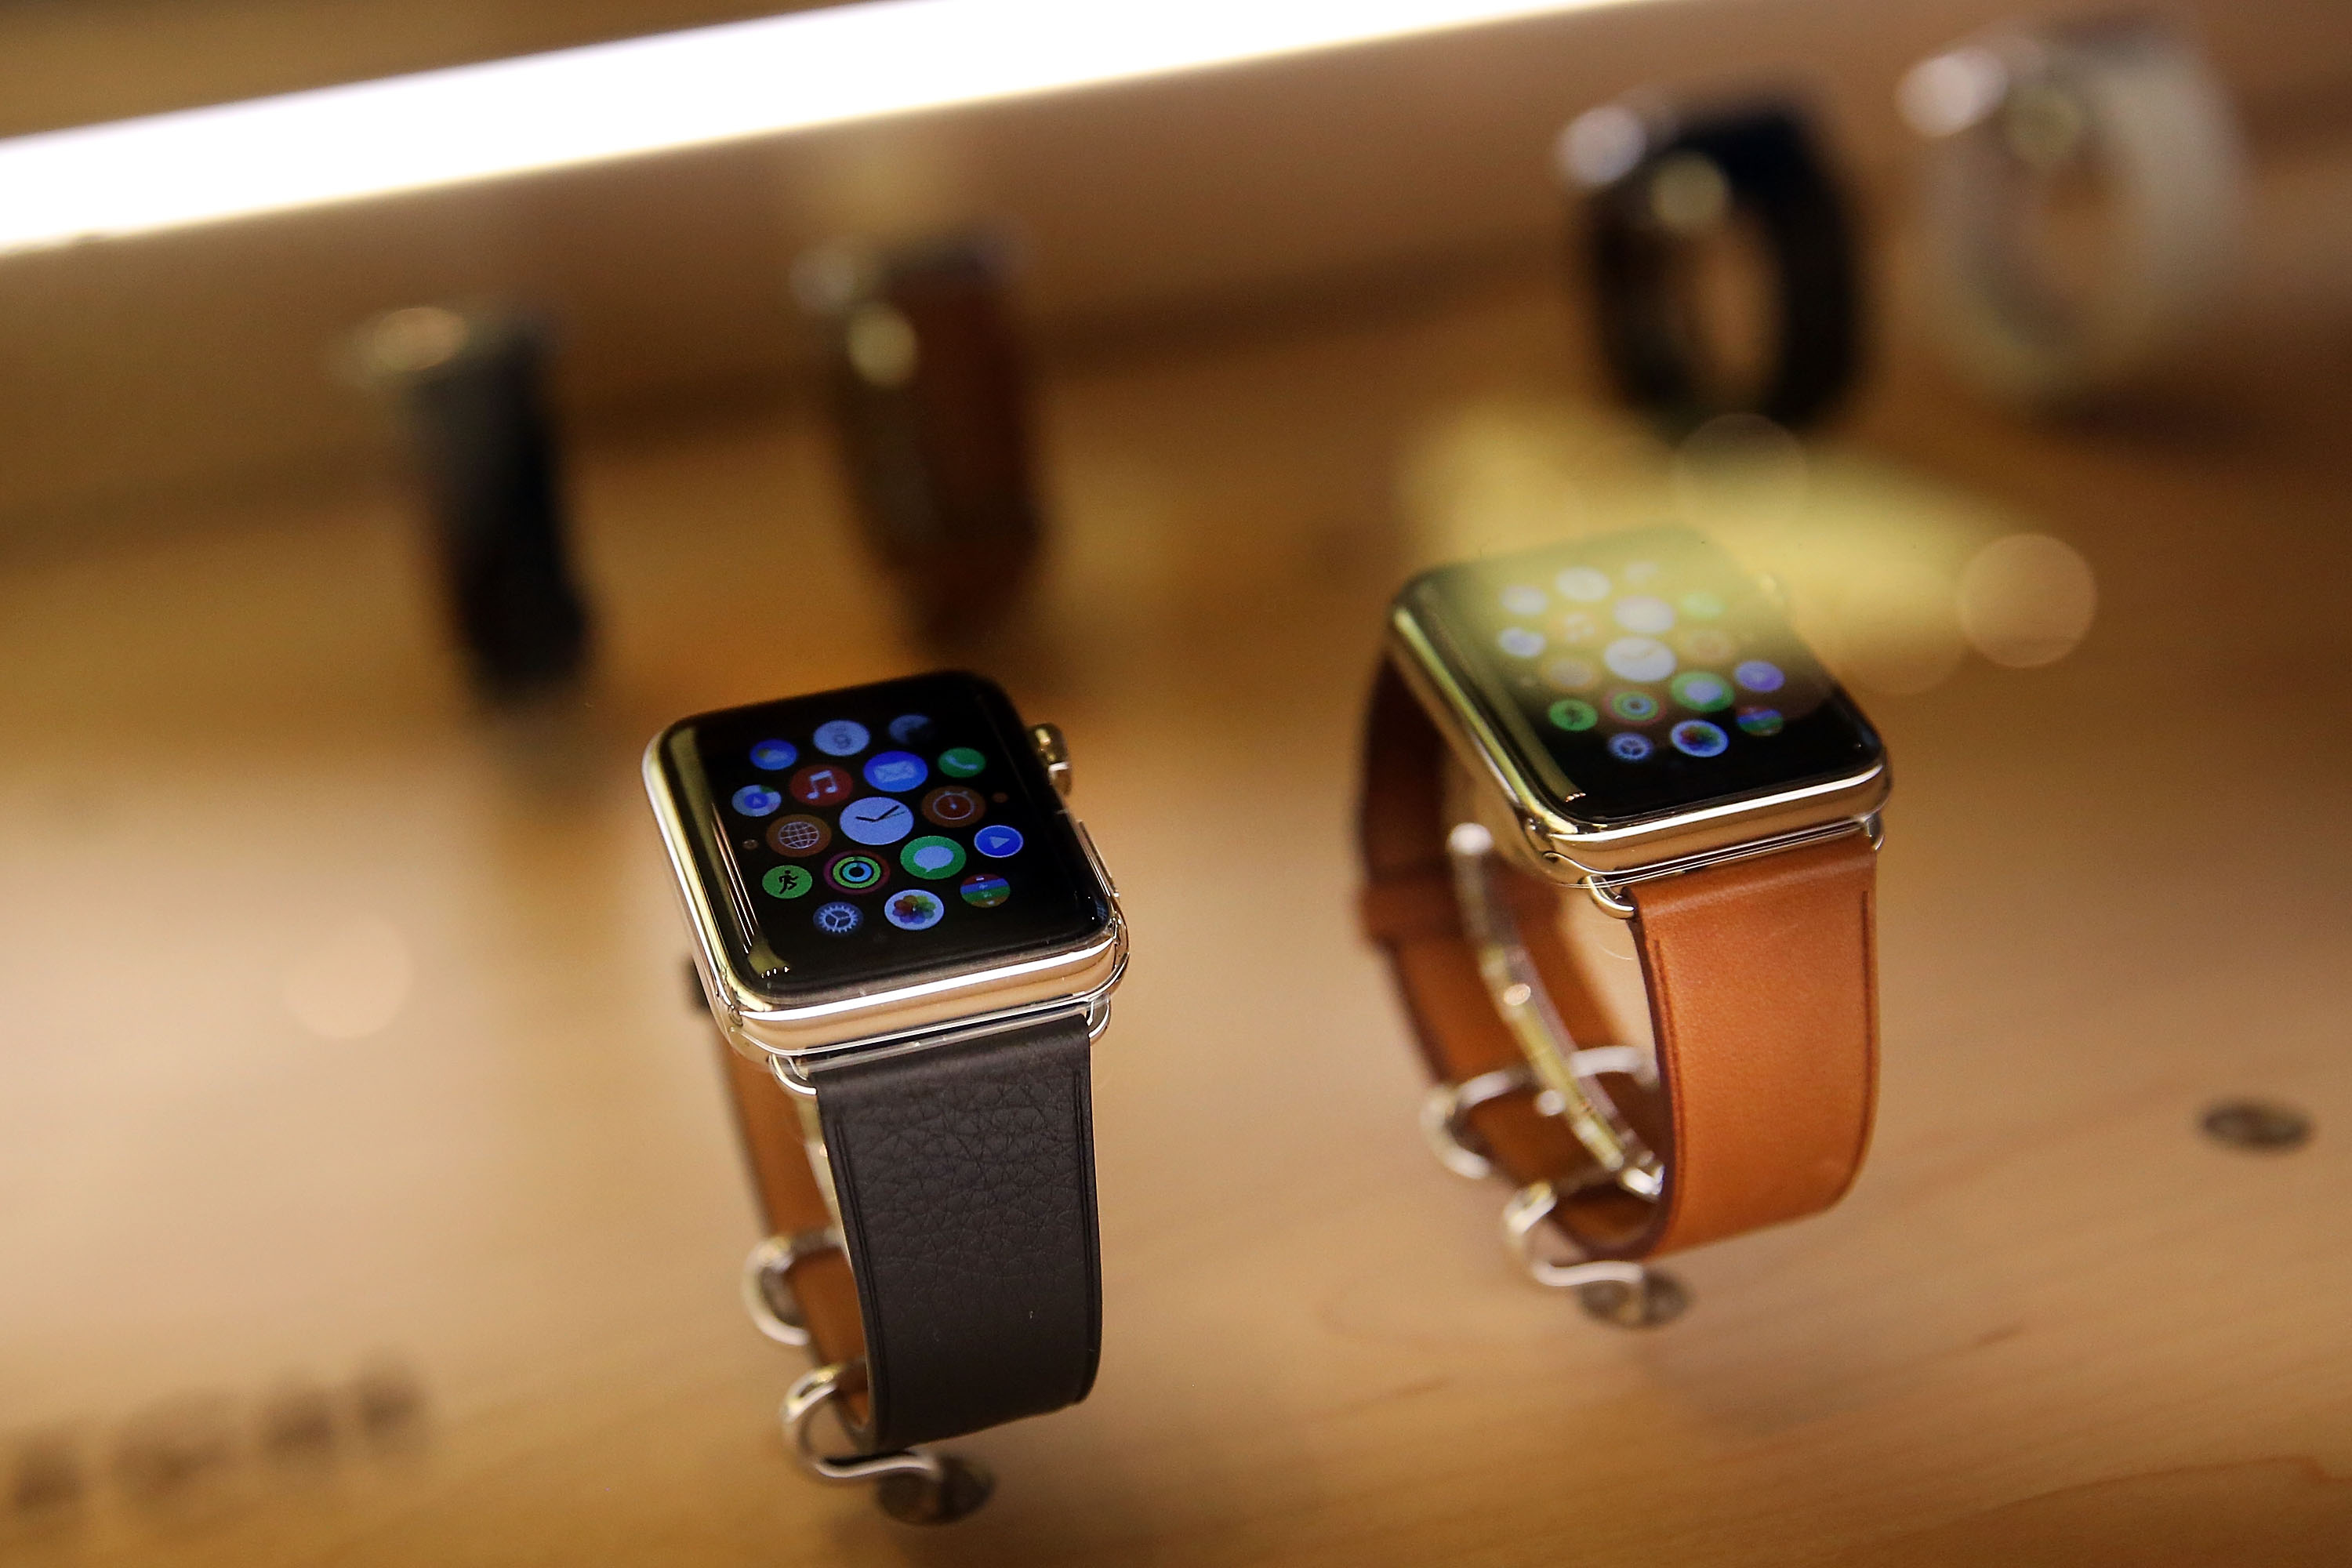 Watchos 3 major update now available - Watchos 2 Update How To Install Apple Watch Operating